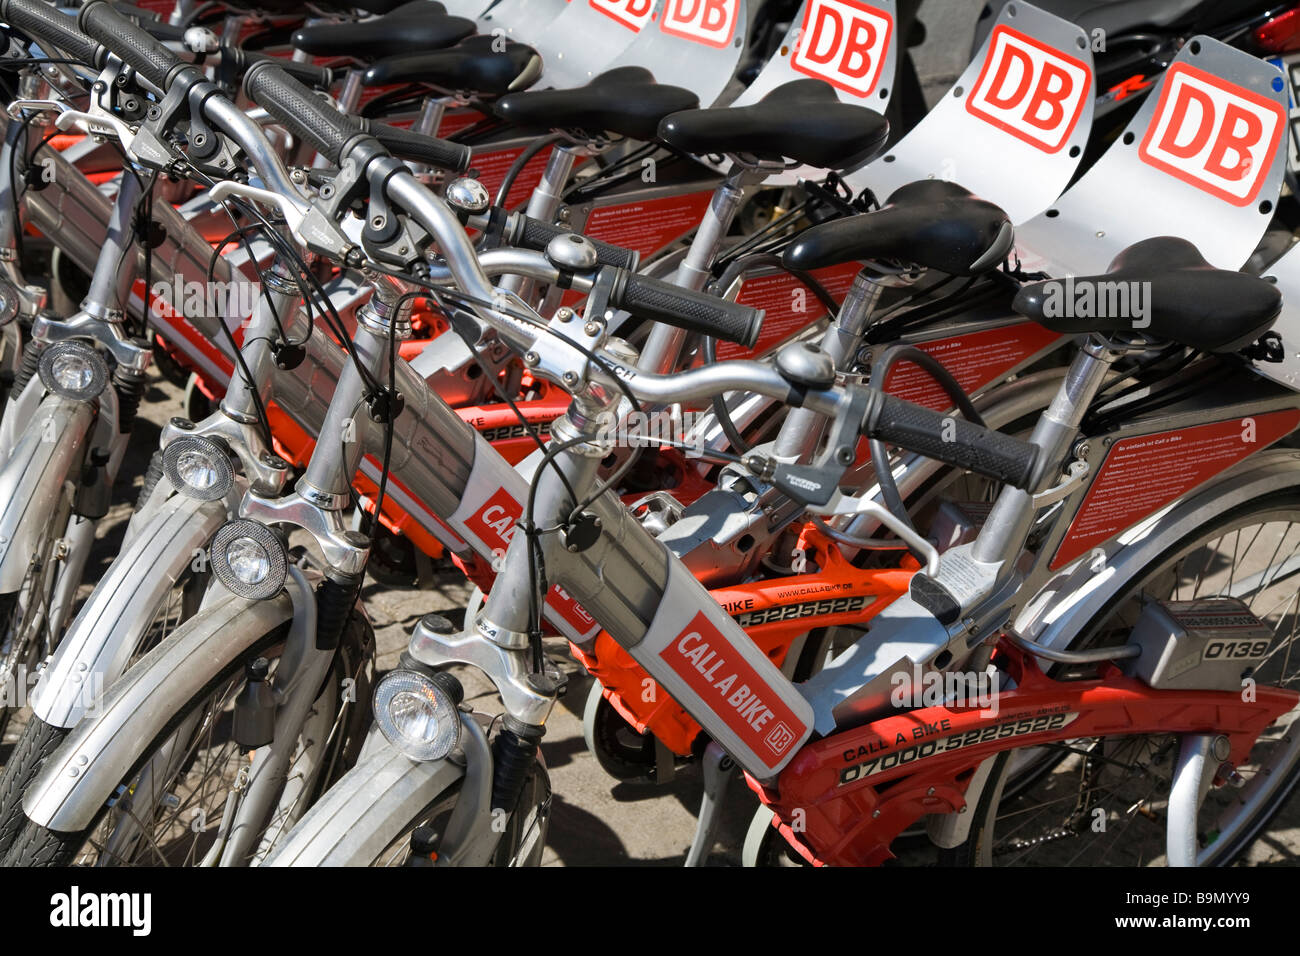 Publicly available bicycles for hire Munich Germany - Stock Image